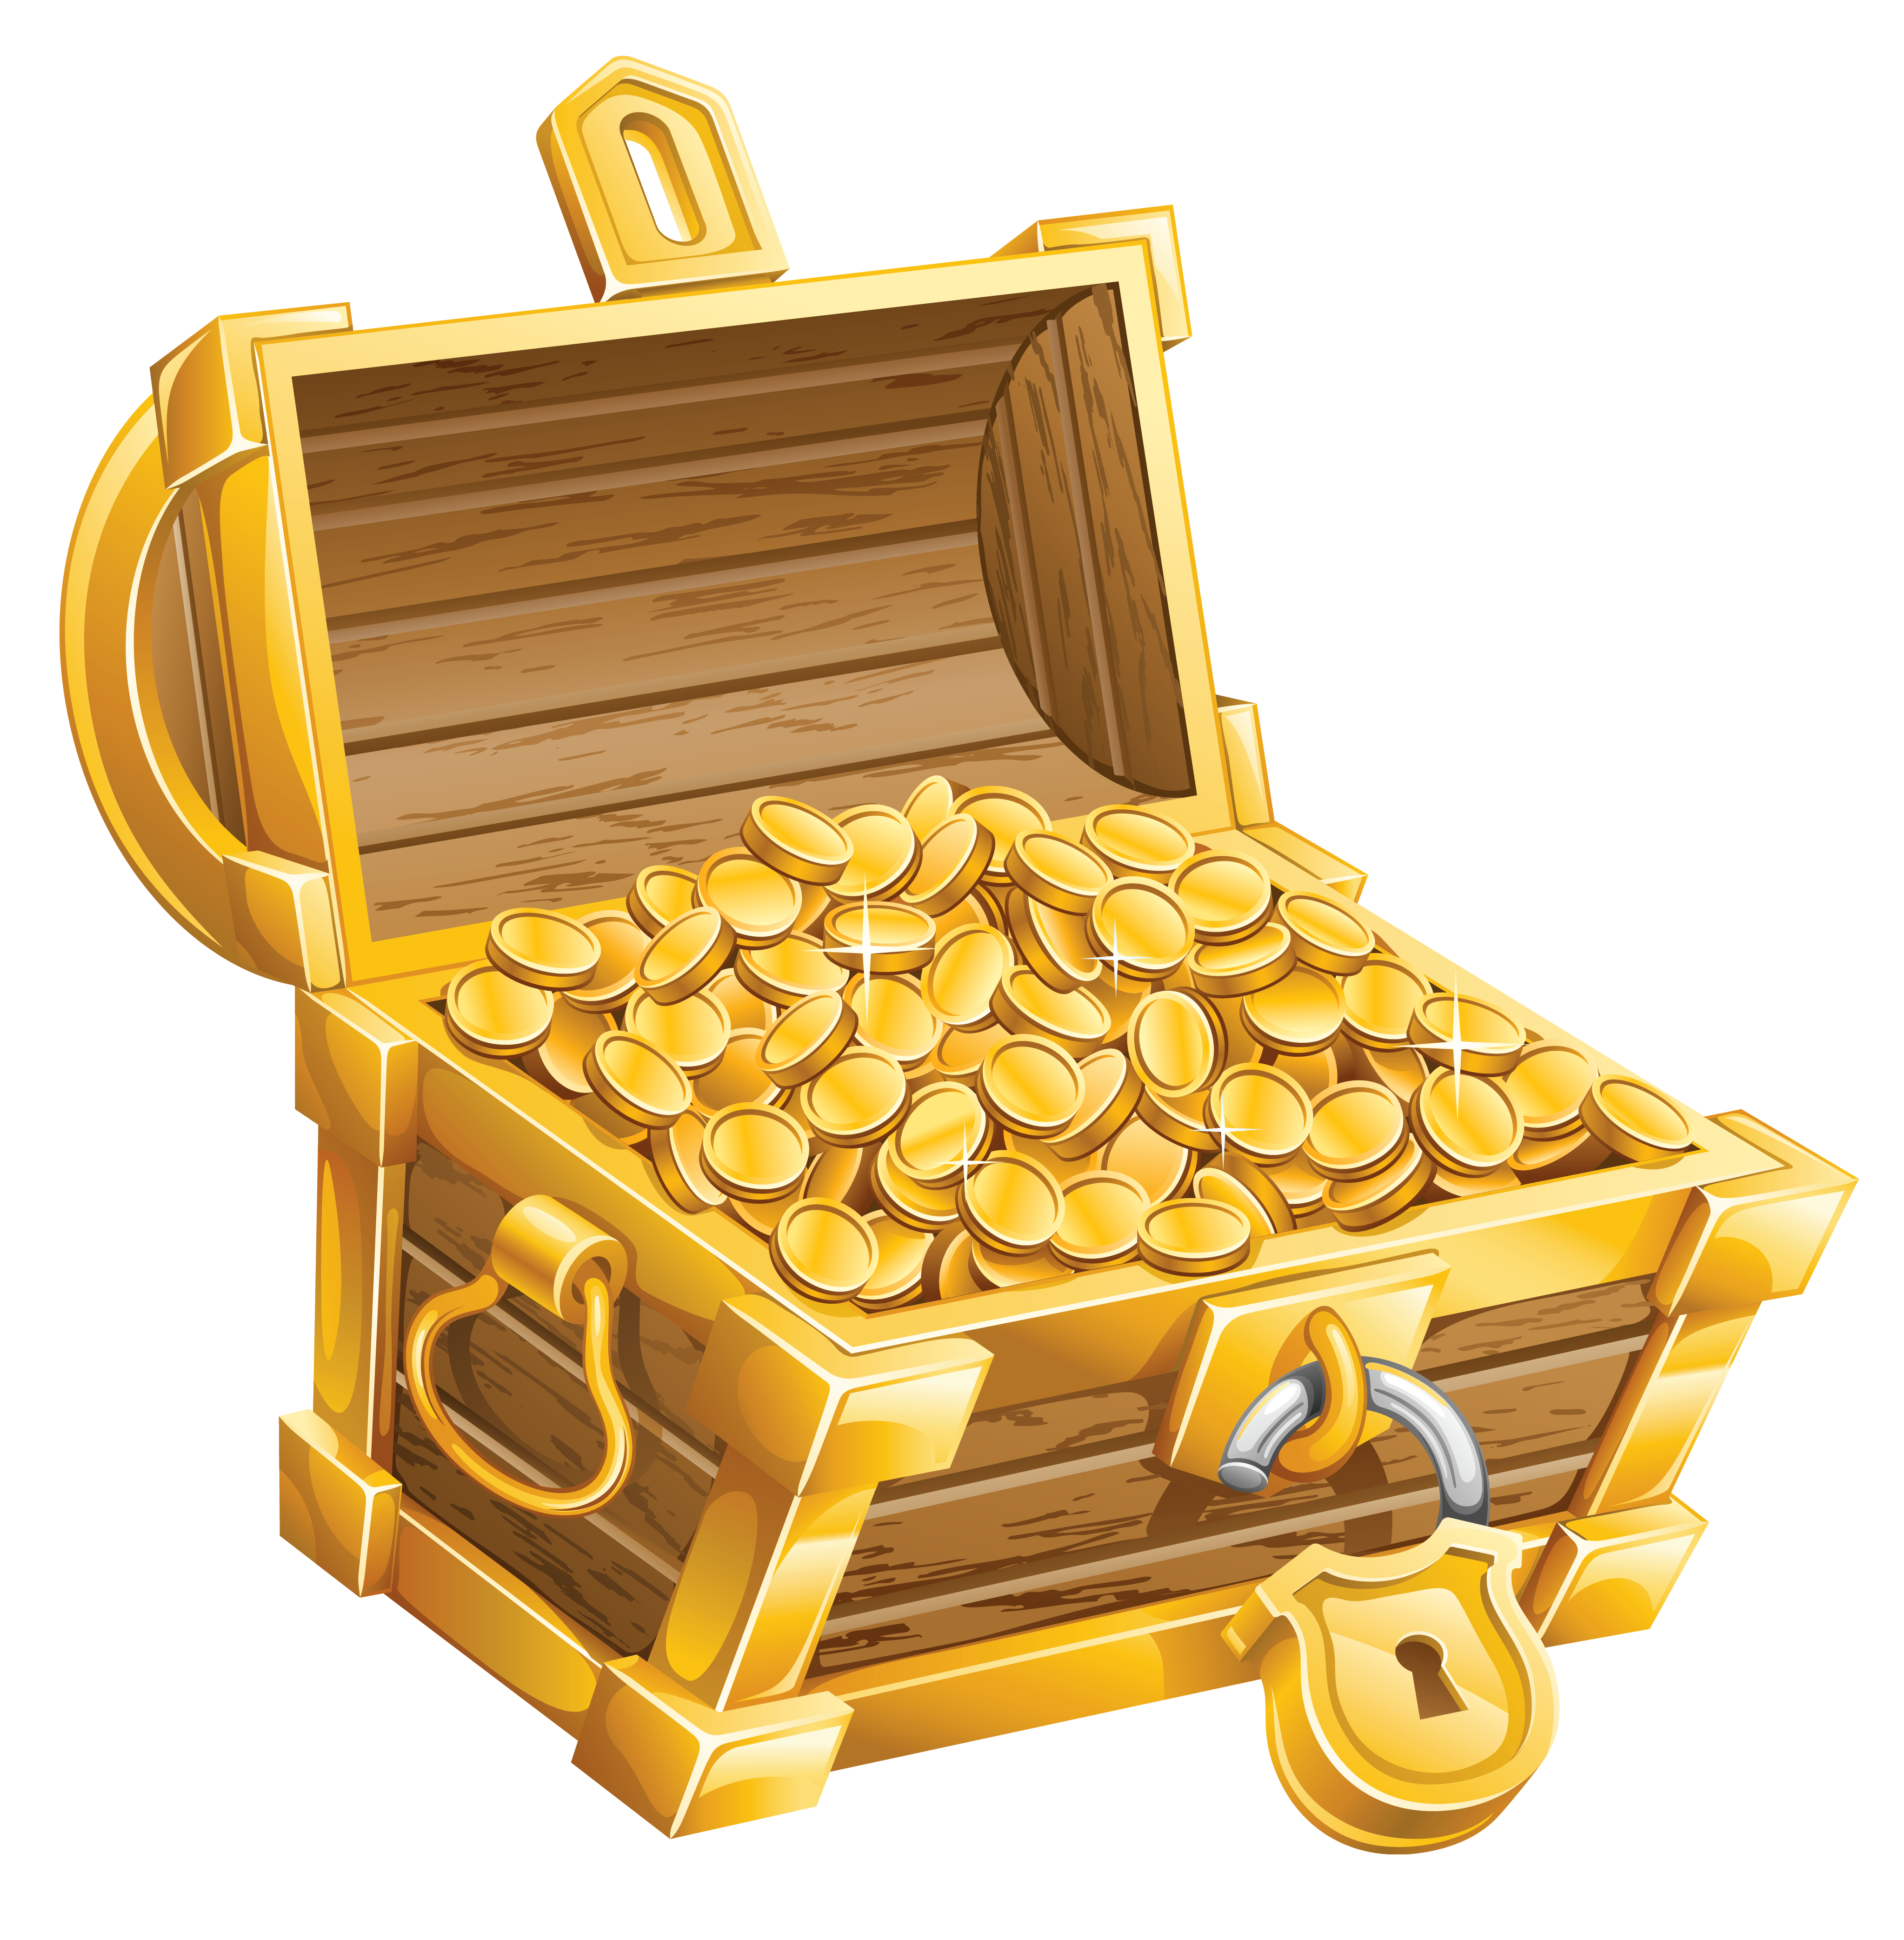 Pirate chest png. Treasure clipart picture gallery